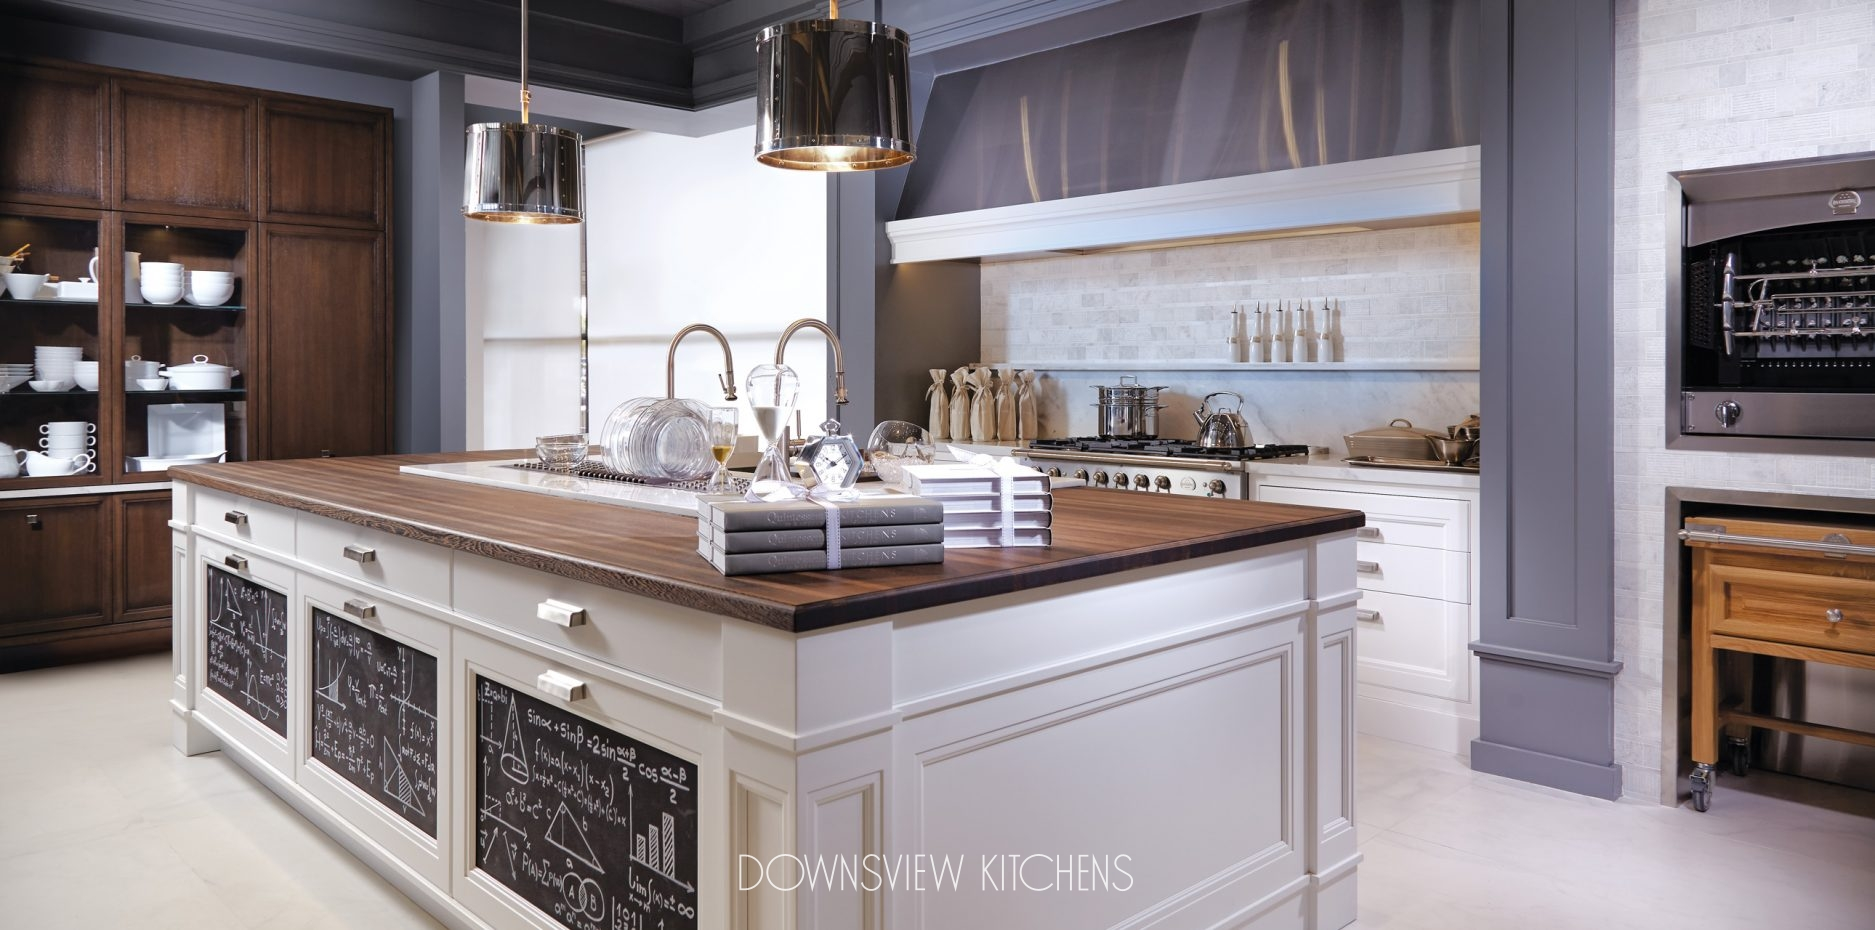 DESIGN WISDOM Downsview Kitchens And Fine Custom Cabinetry - Downsview kitchens